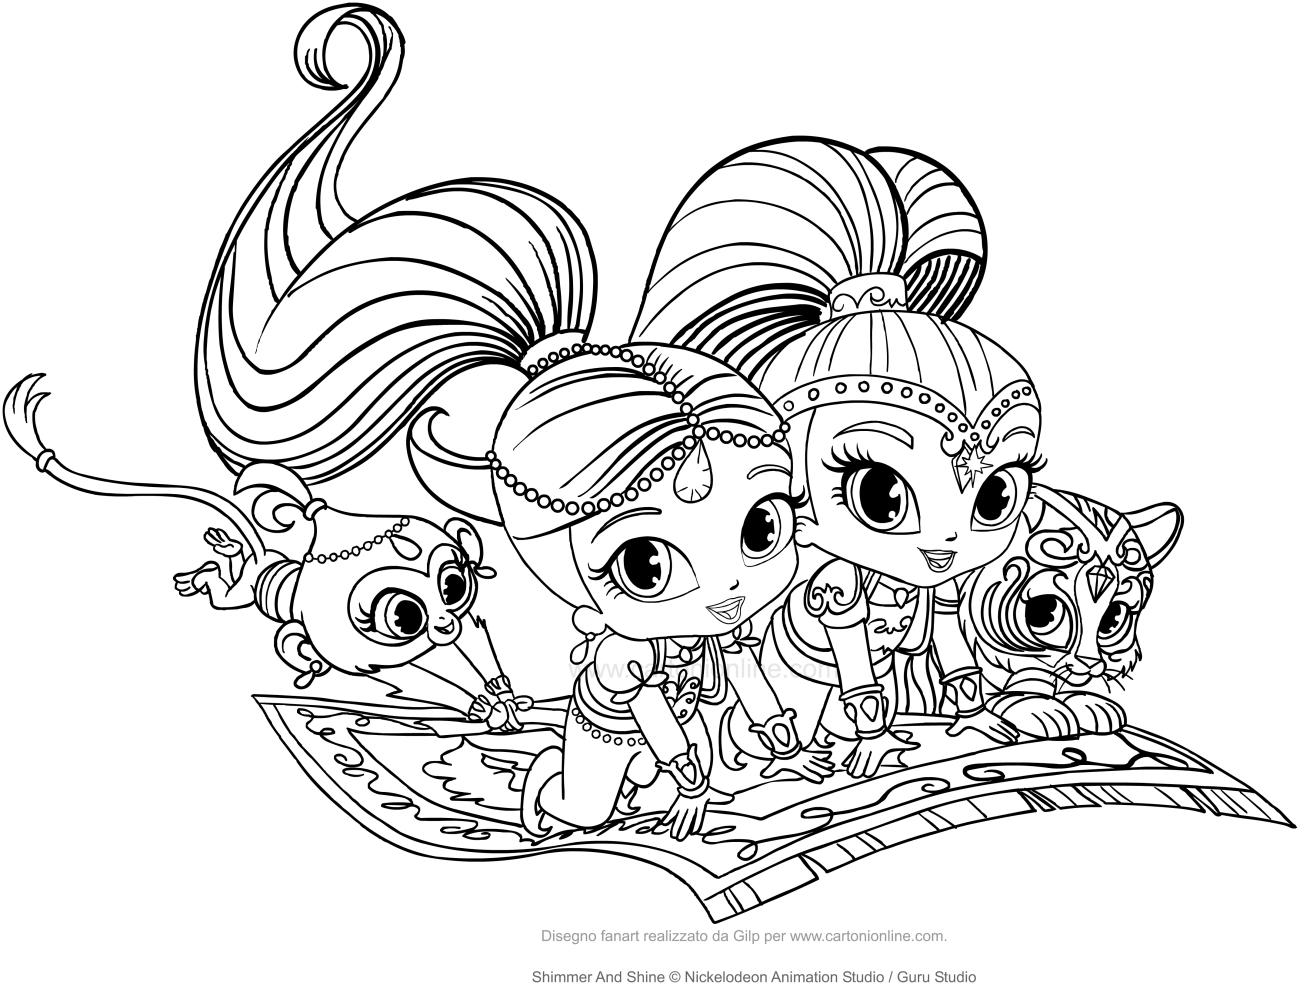 Shimmer And Shine Coloring Pages To Print Shimmer And Shine Coloring Page